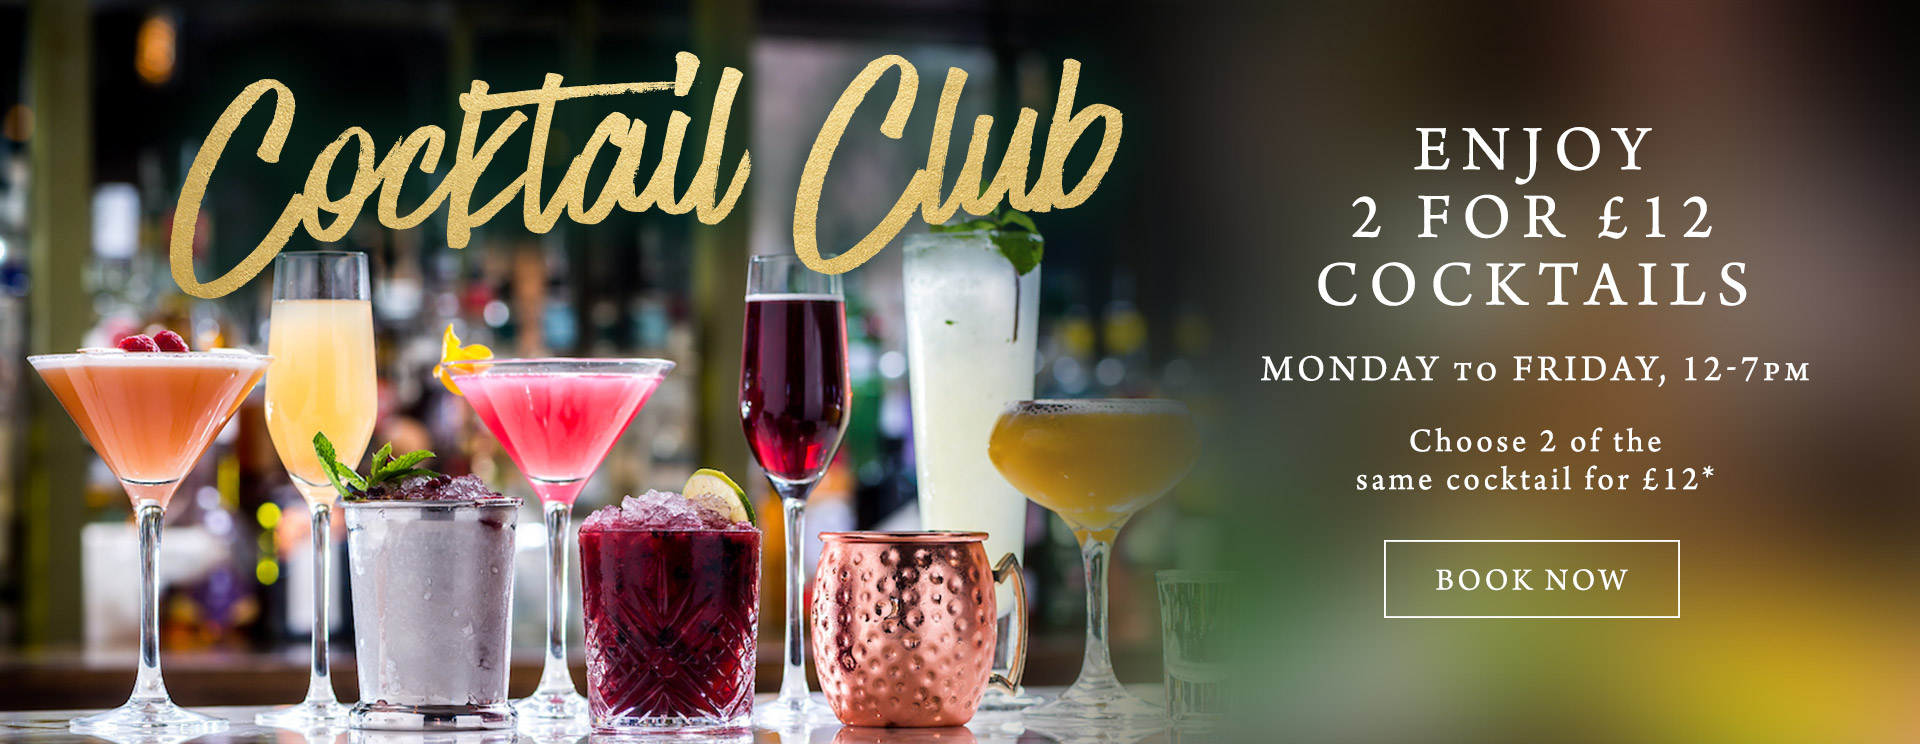 2 for £12 cocktails at The Castle